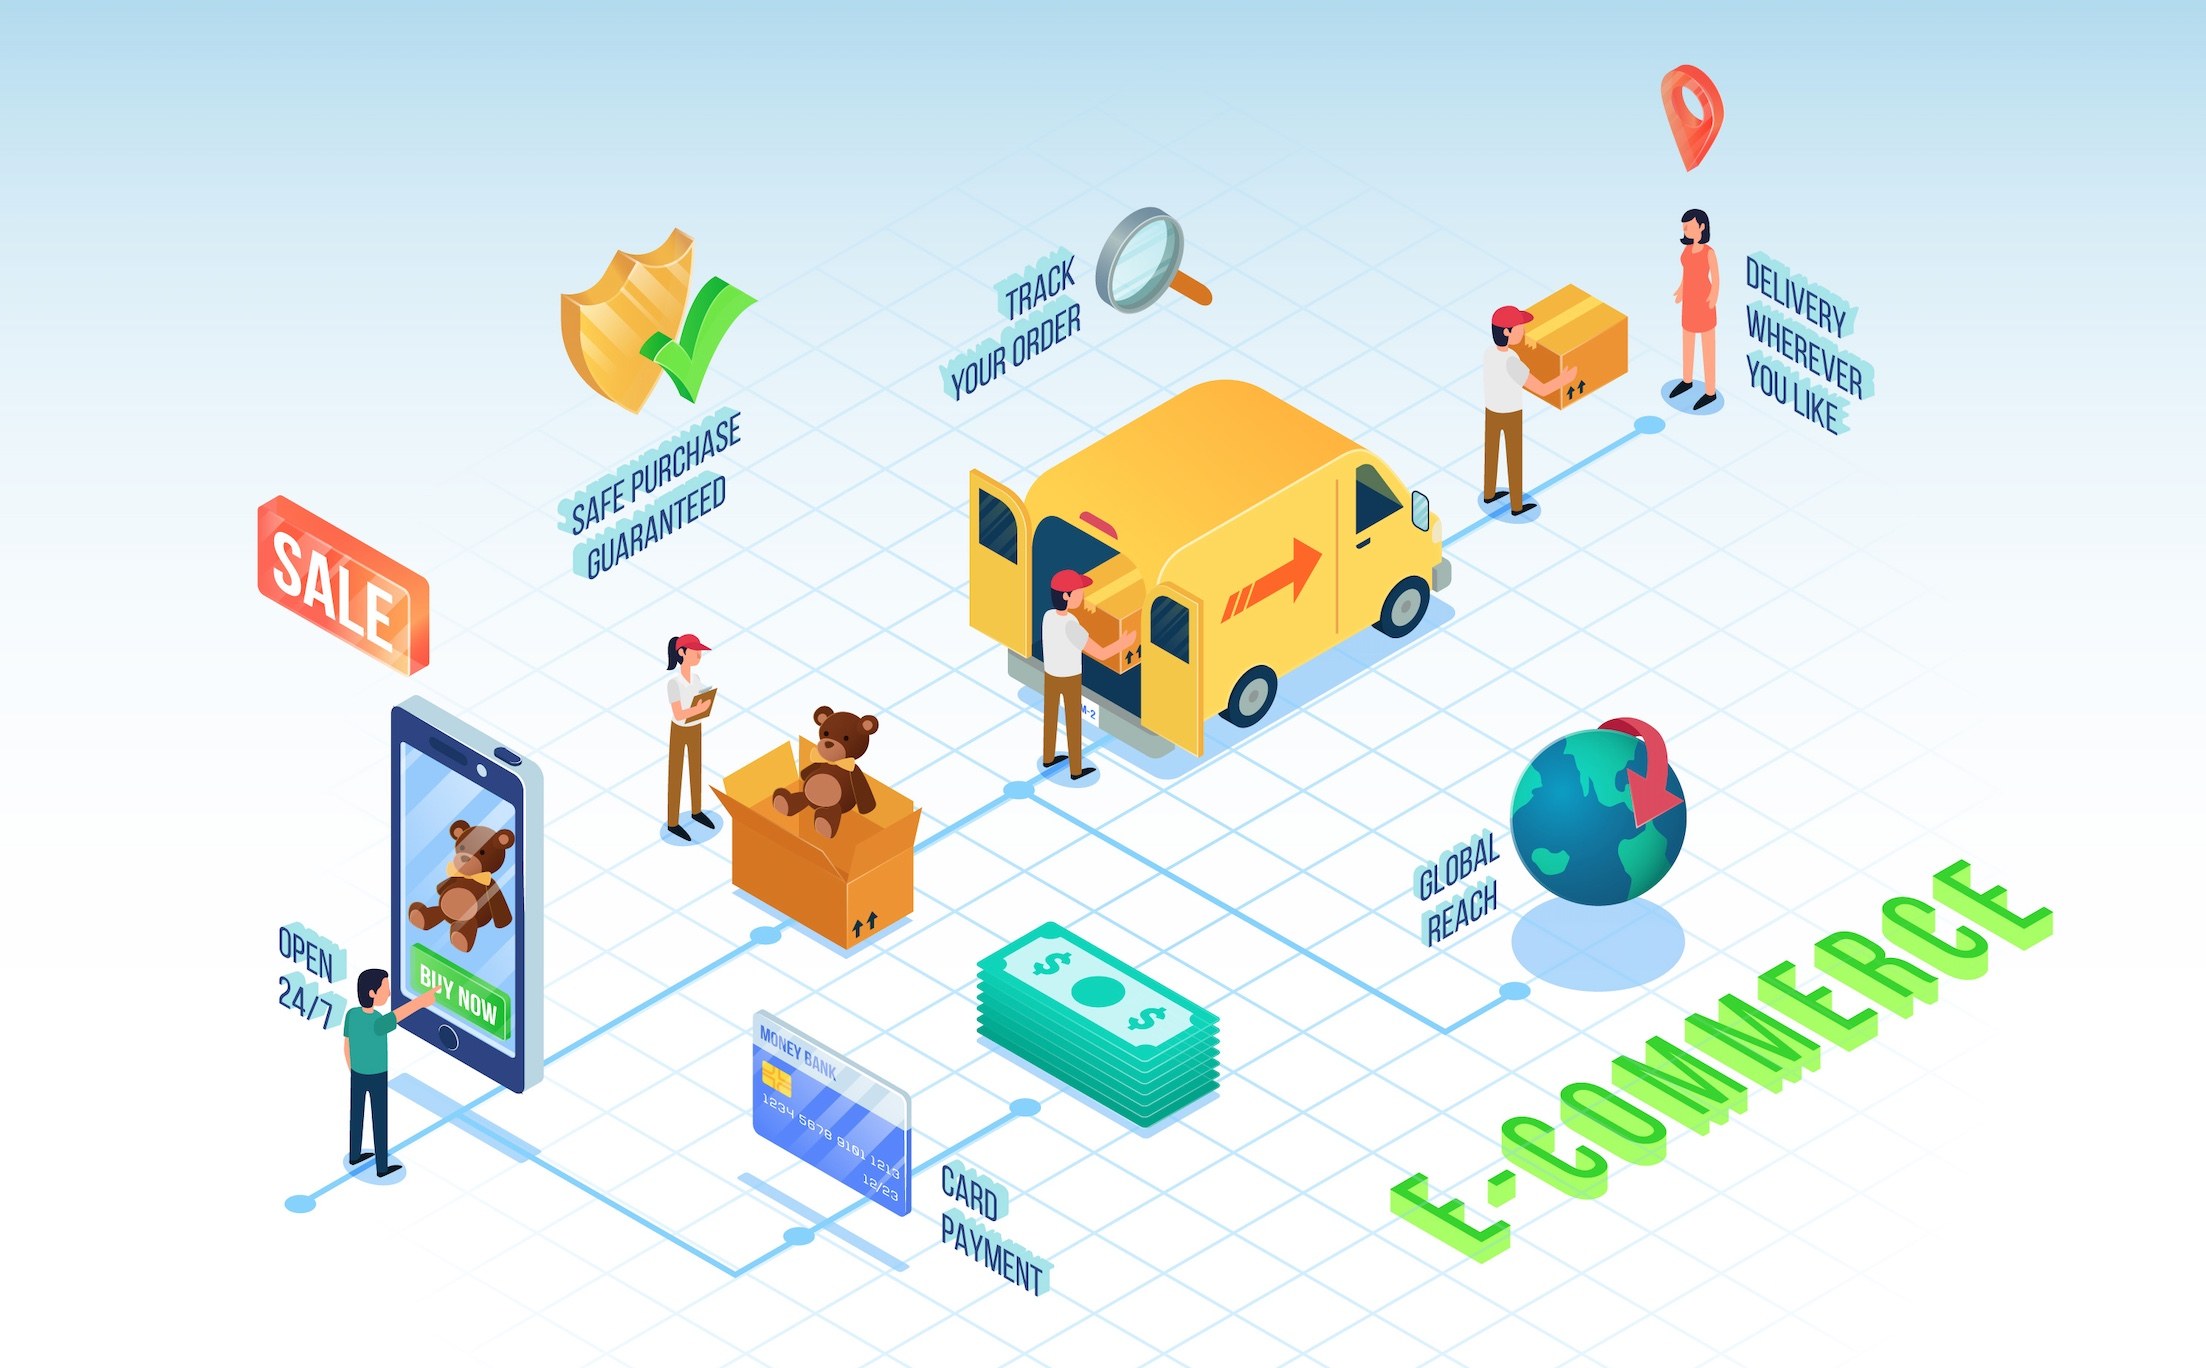 ecommerce strategy and growth